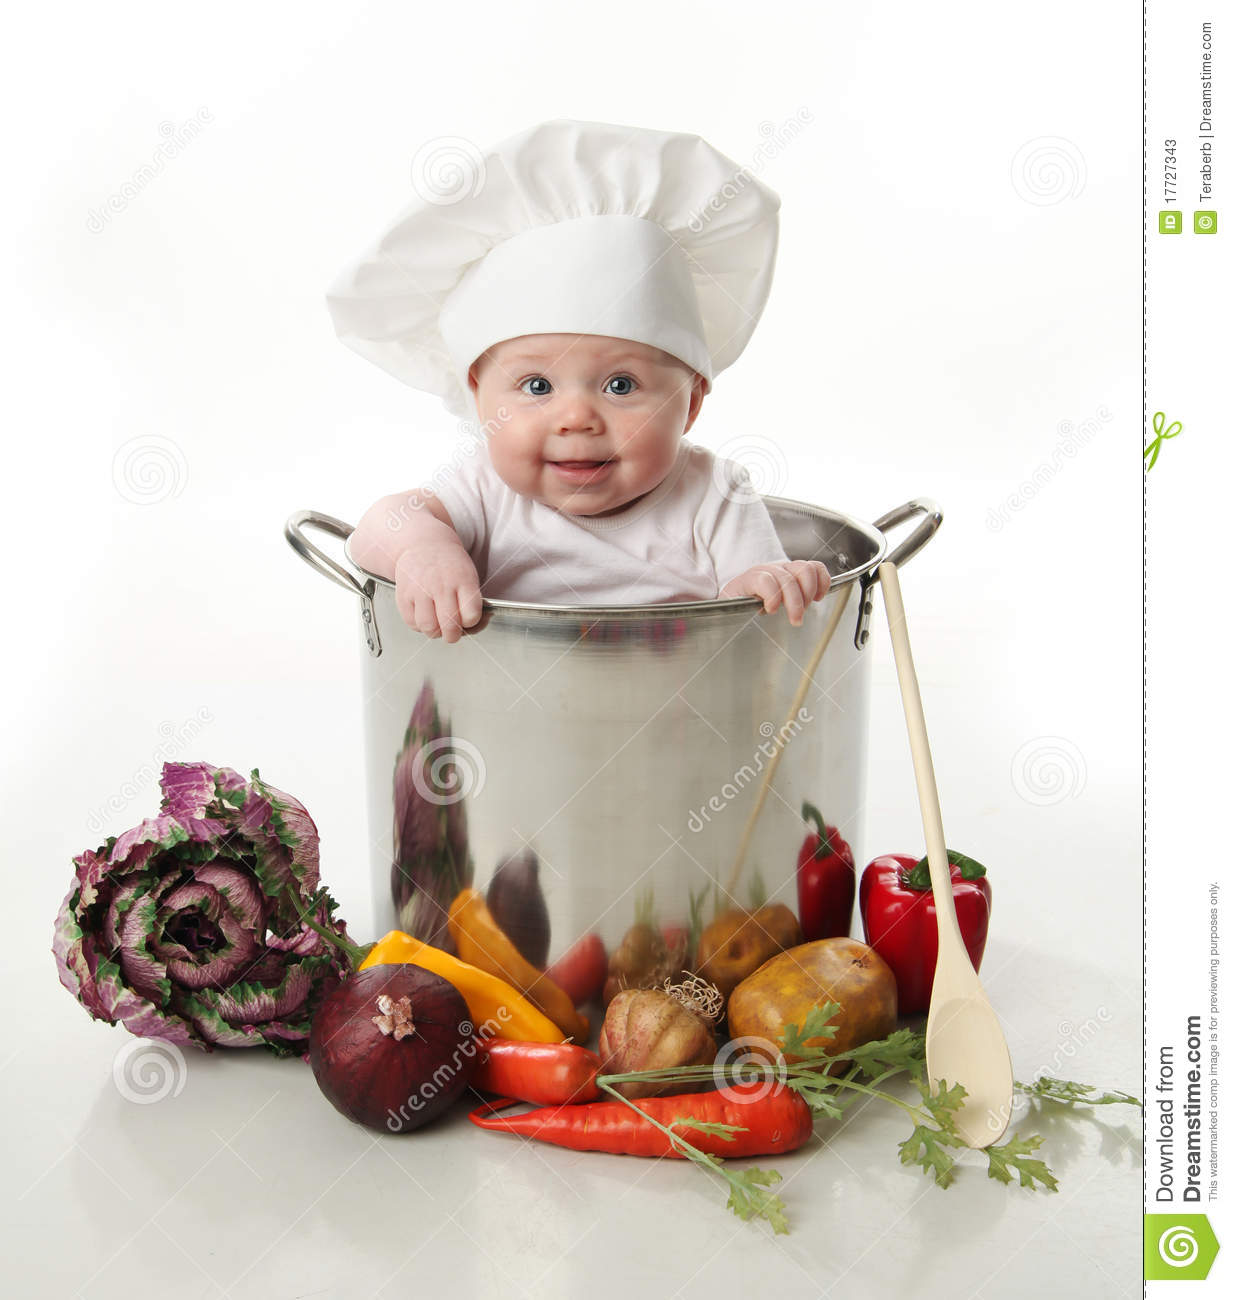 Baby in a cooking pot stock image image of cute ingredients 17727343 - Stylish cooking ...